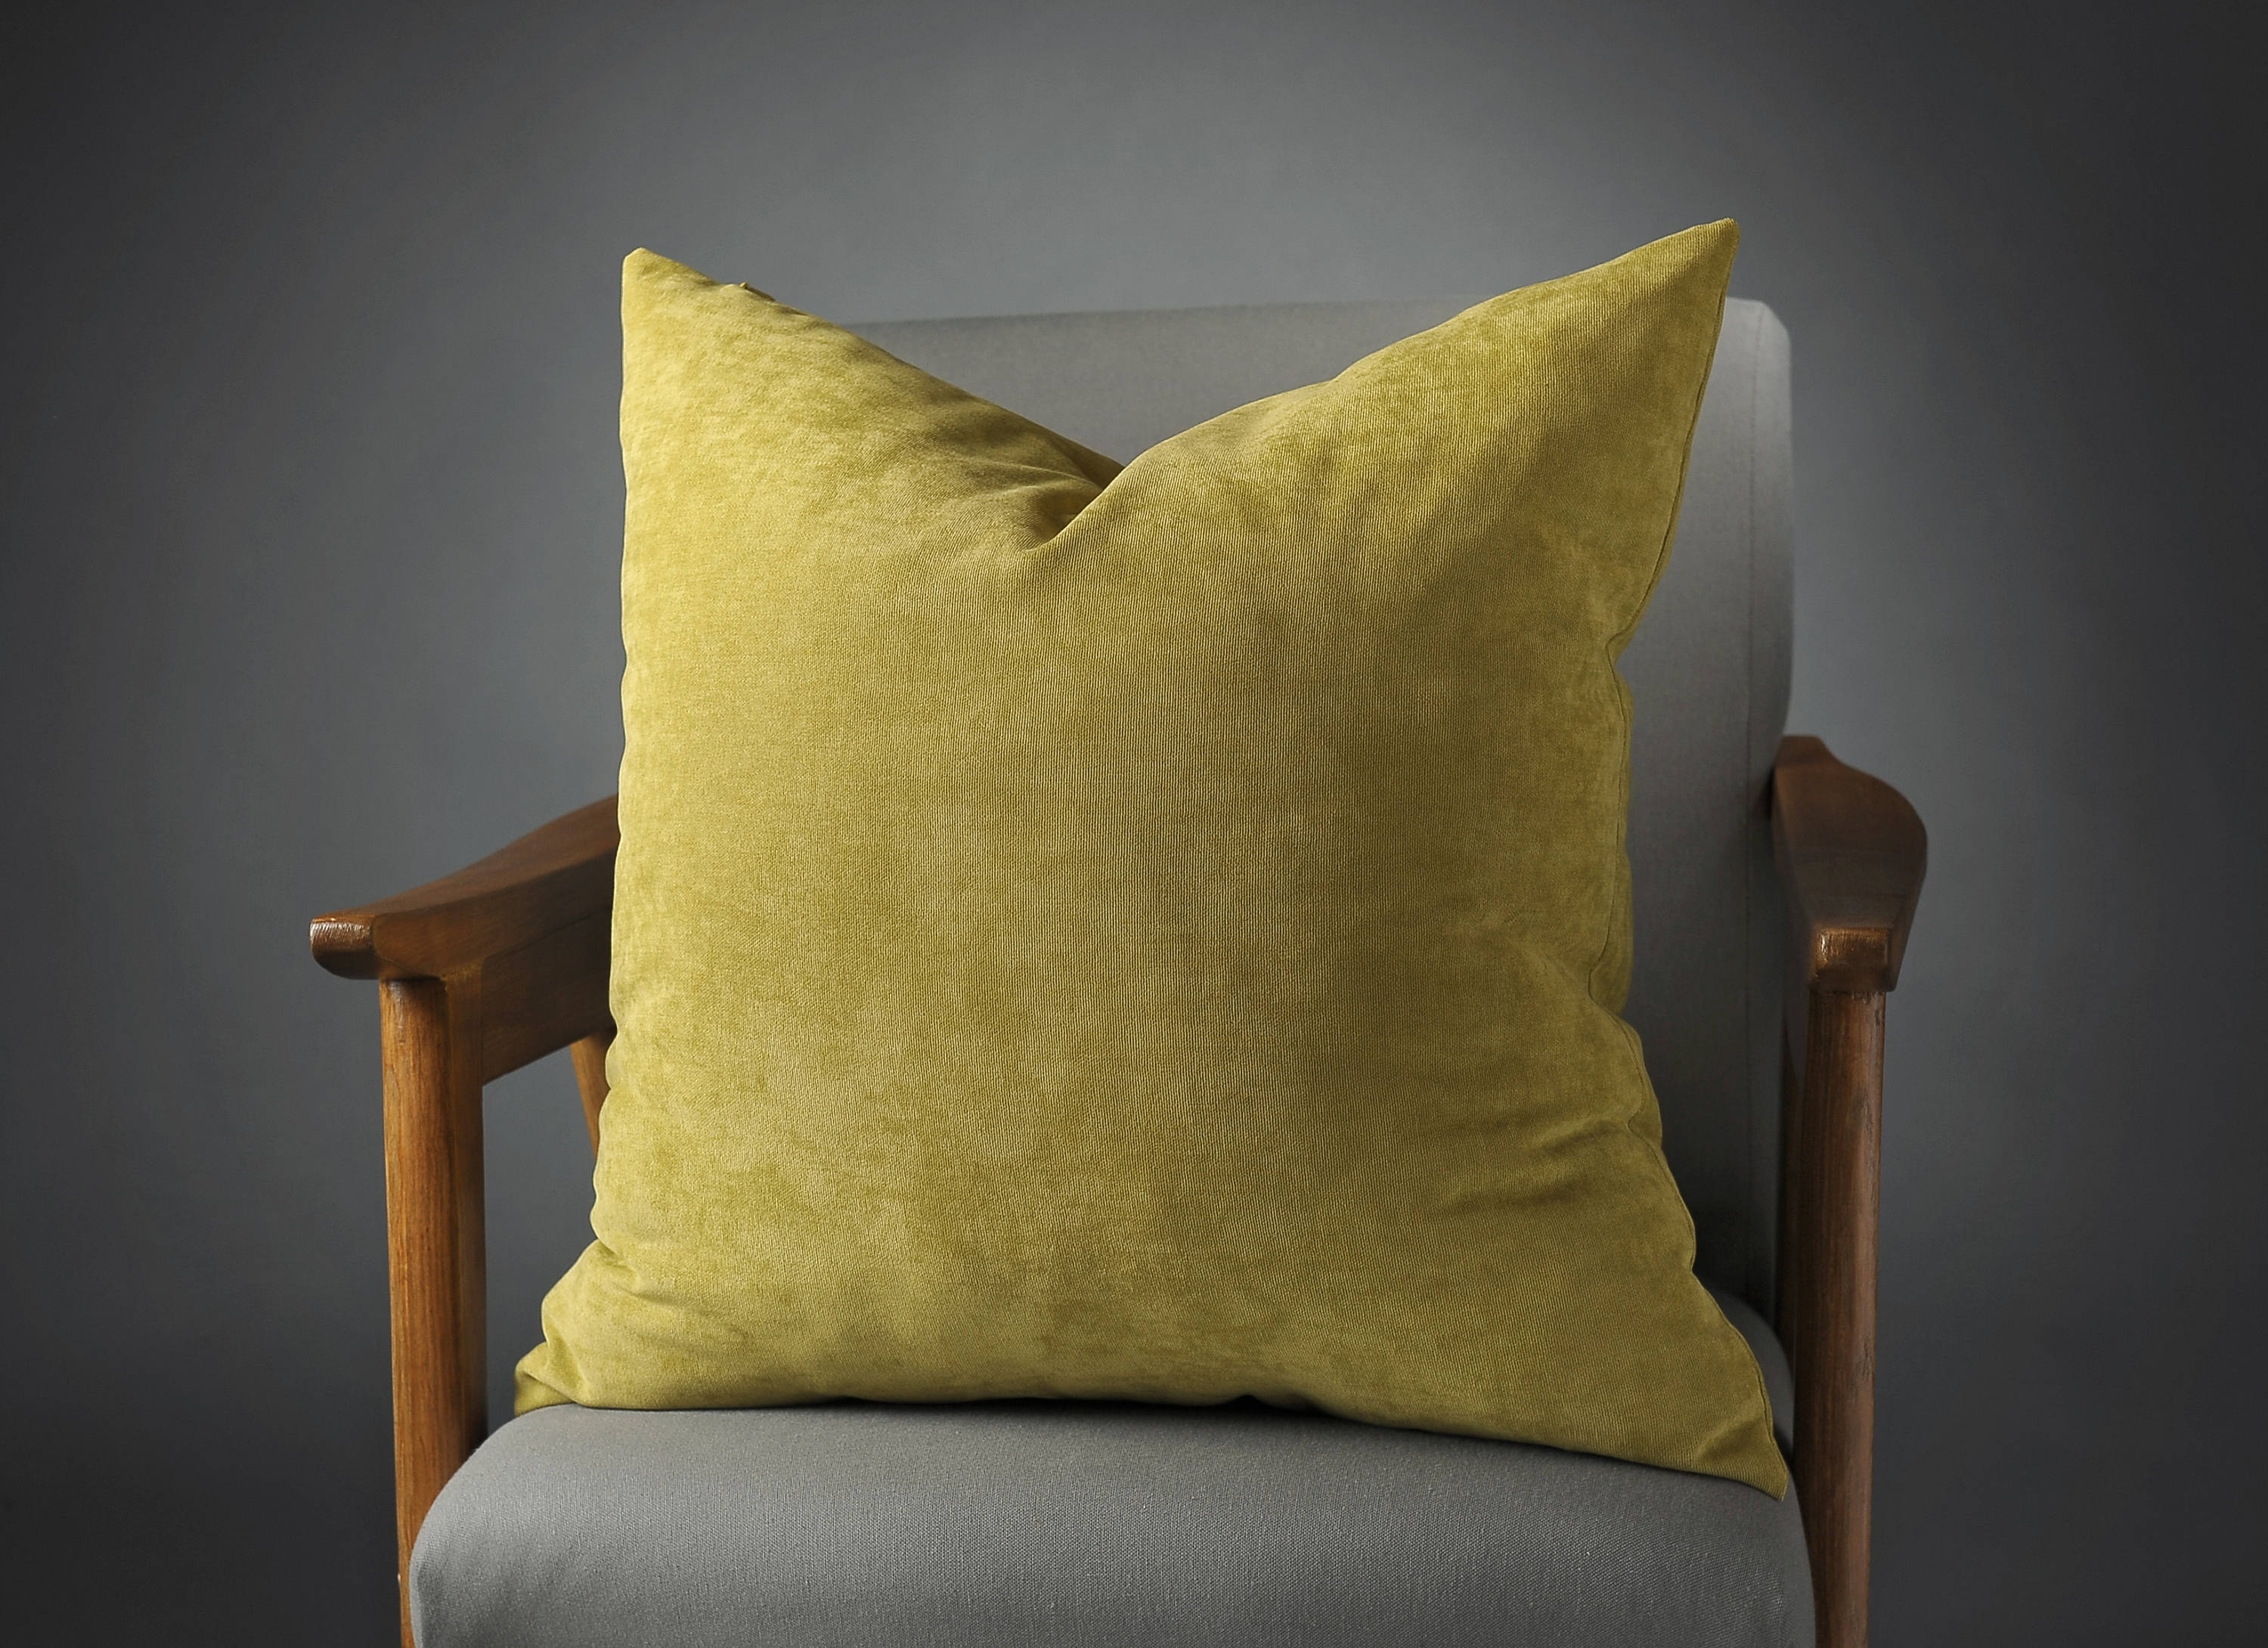 Pistachio Pillow 20x20 Pistachio Pillow